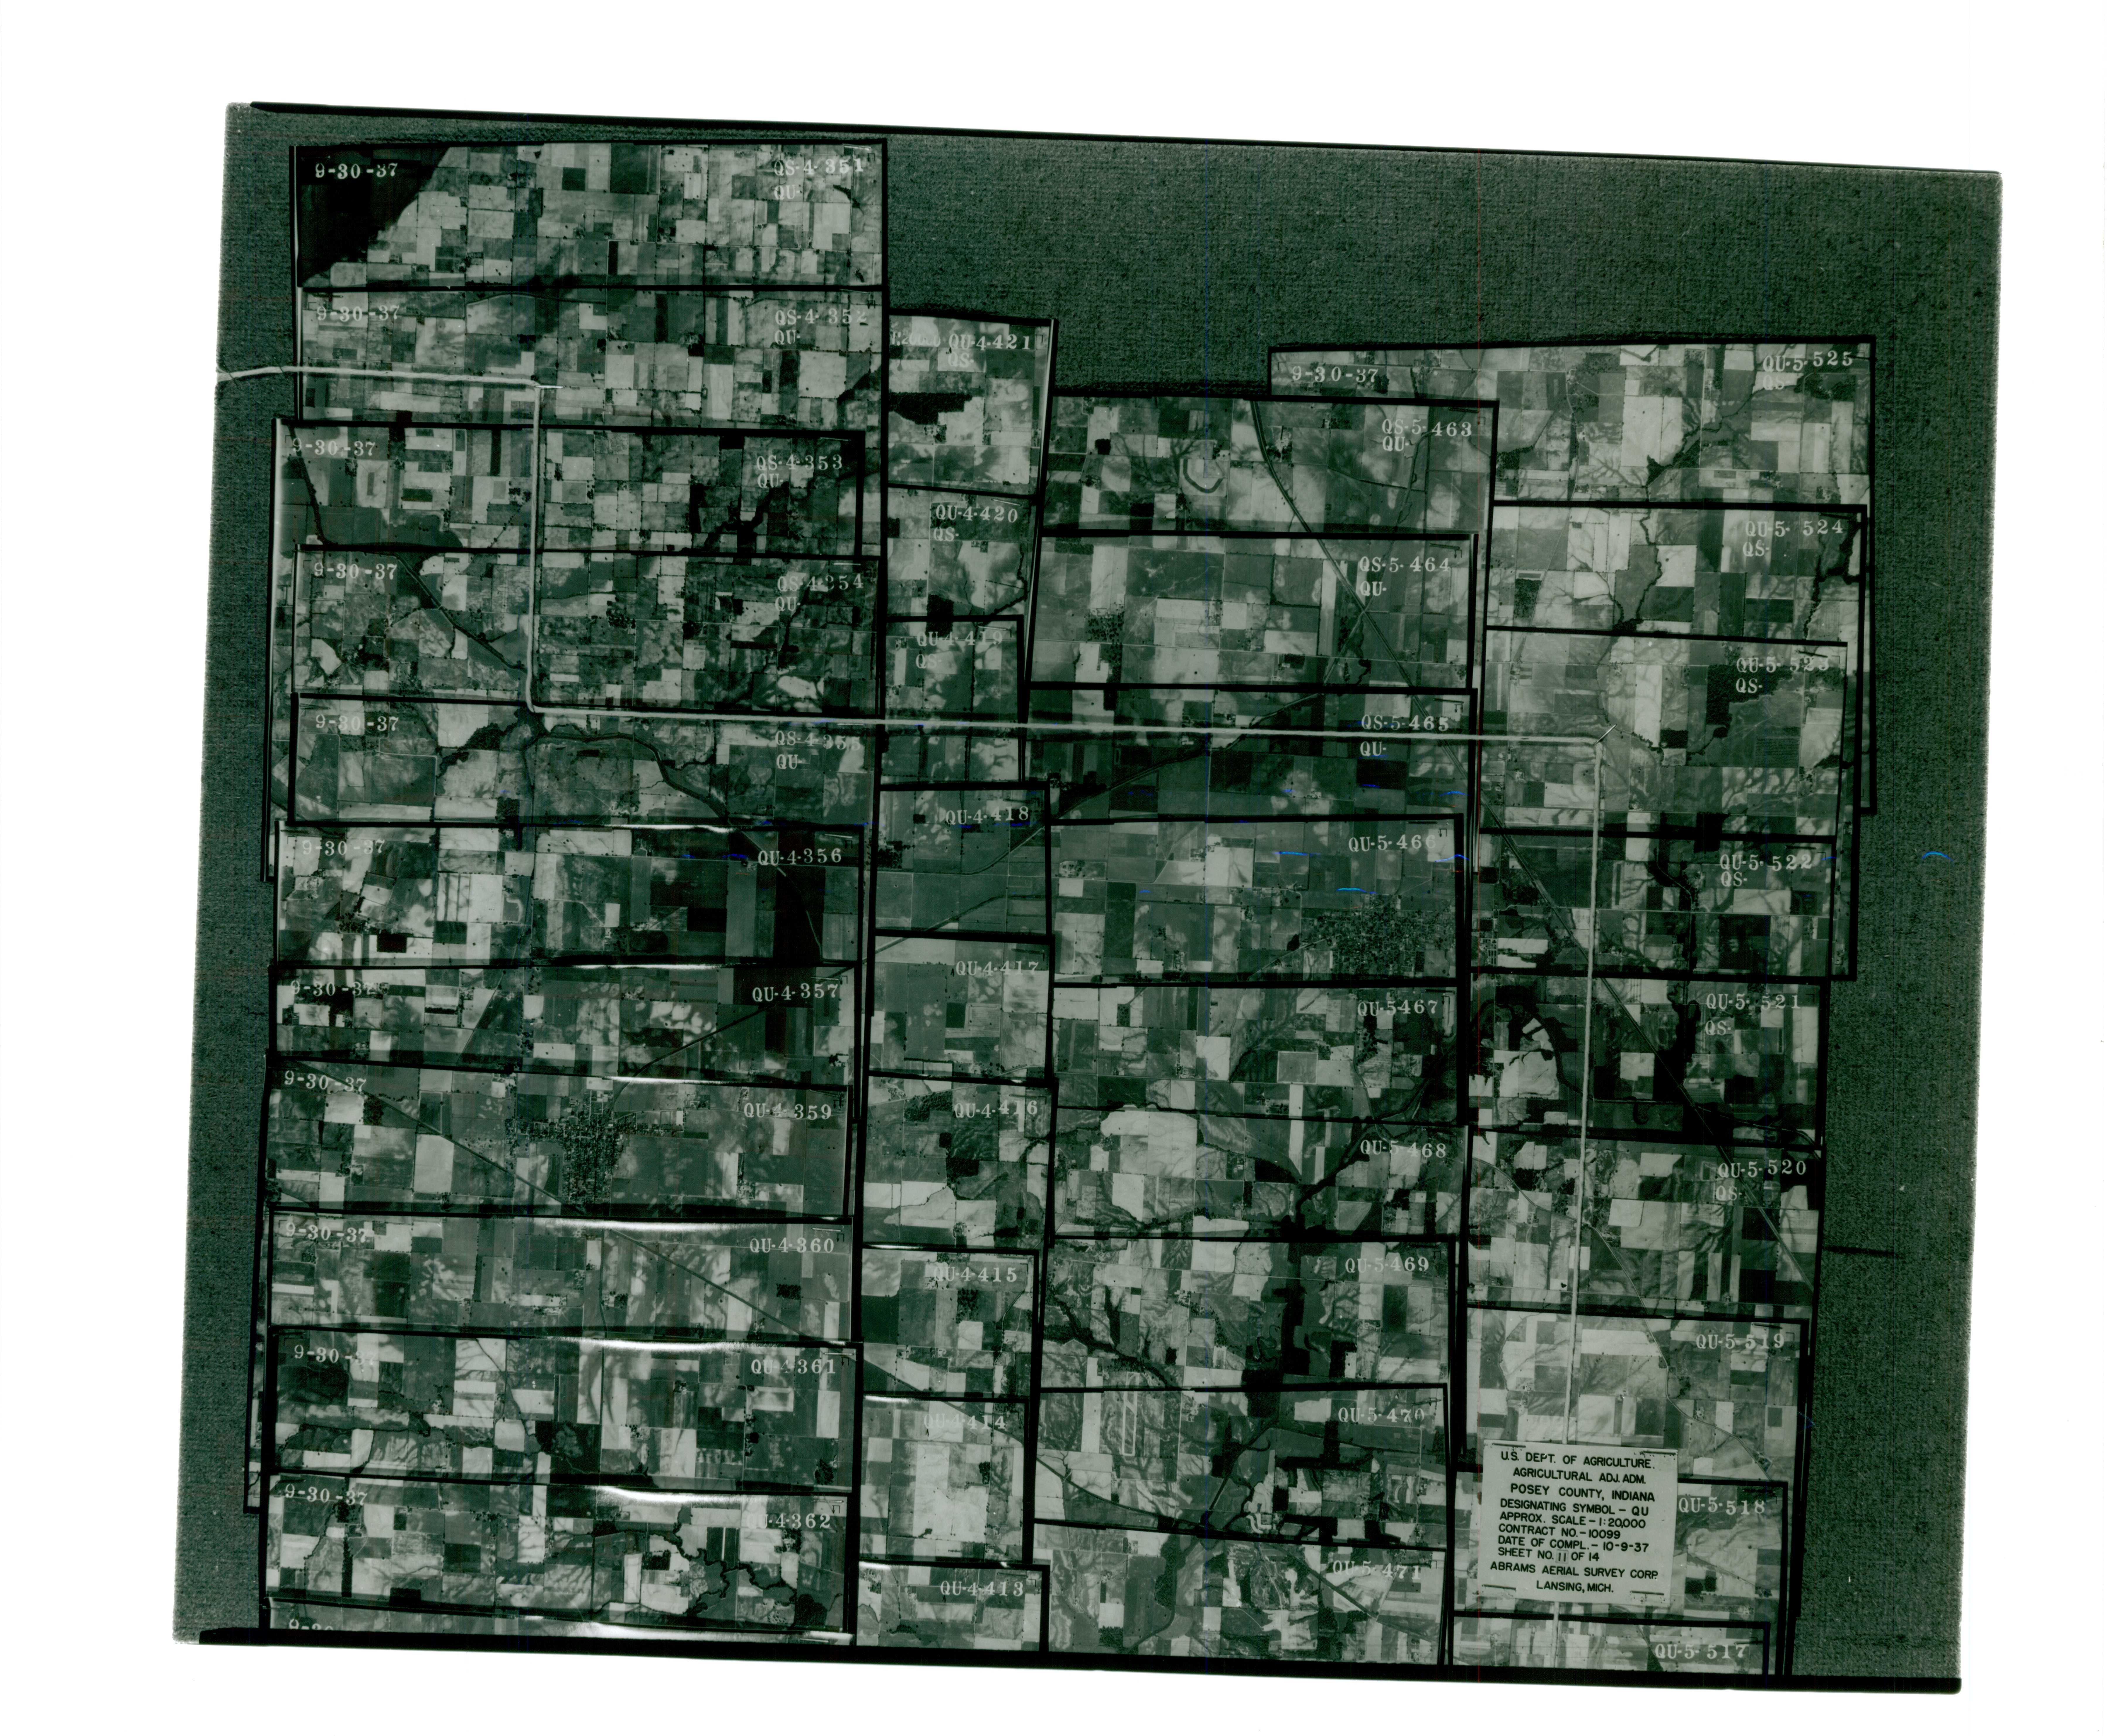 Index to Aerial Photography of Posey County, Indiana 11